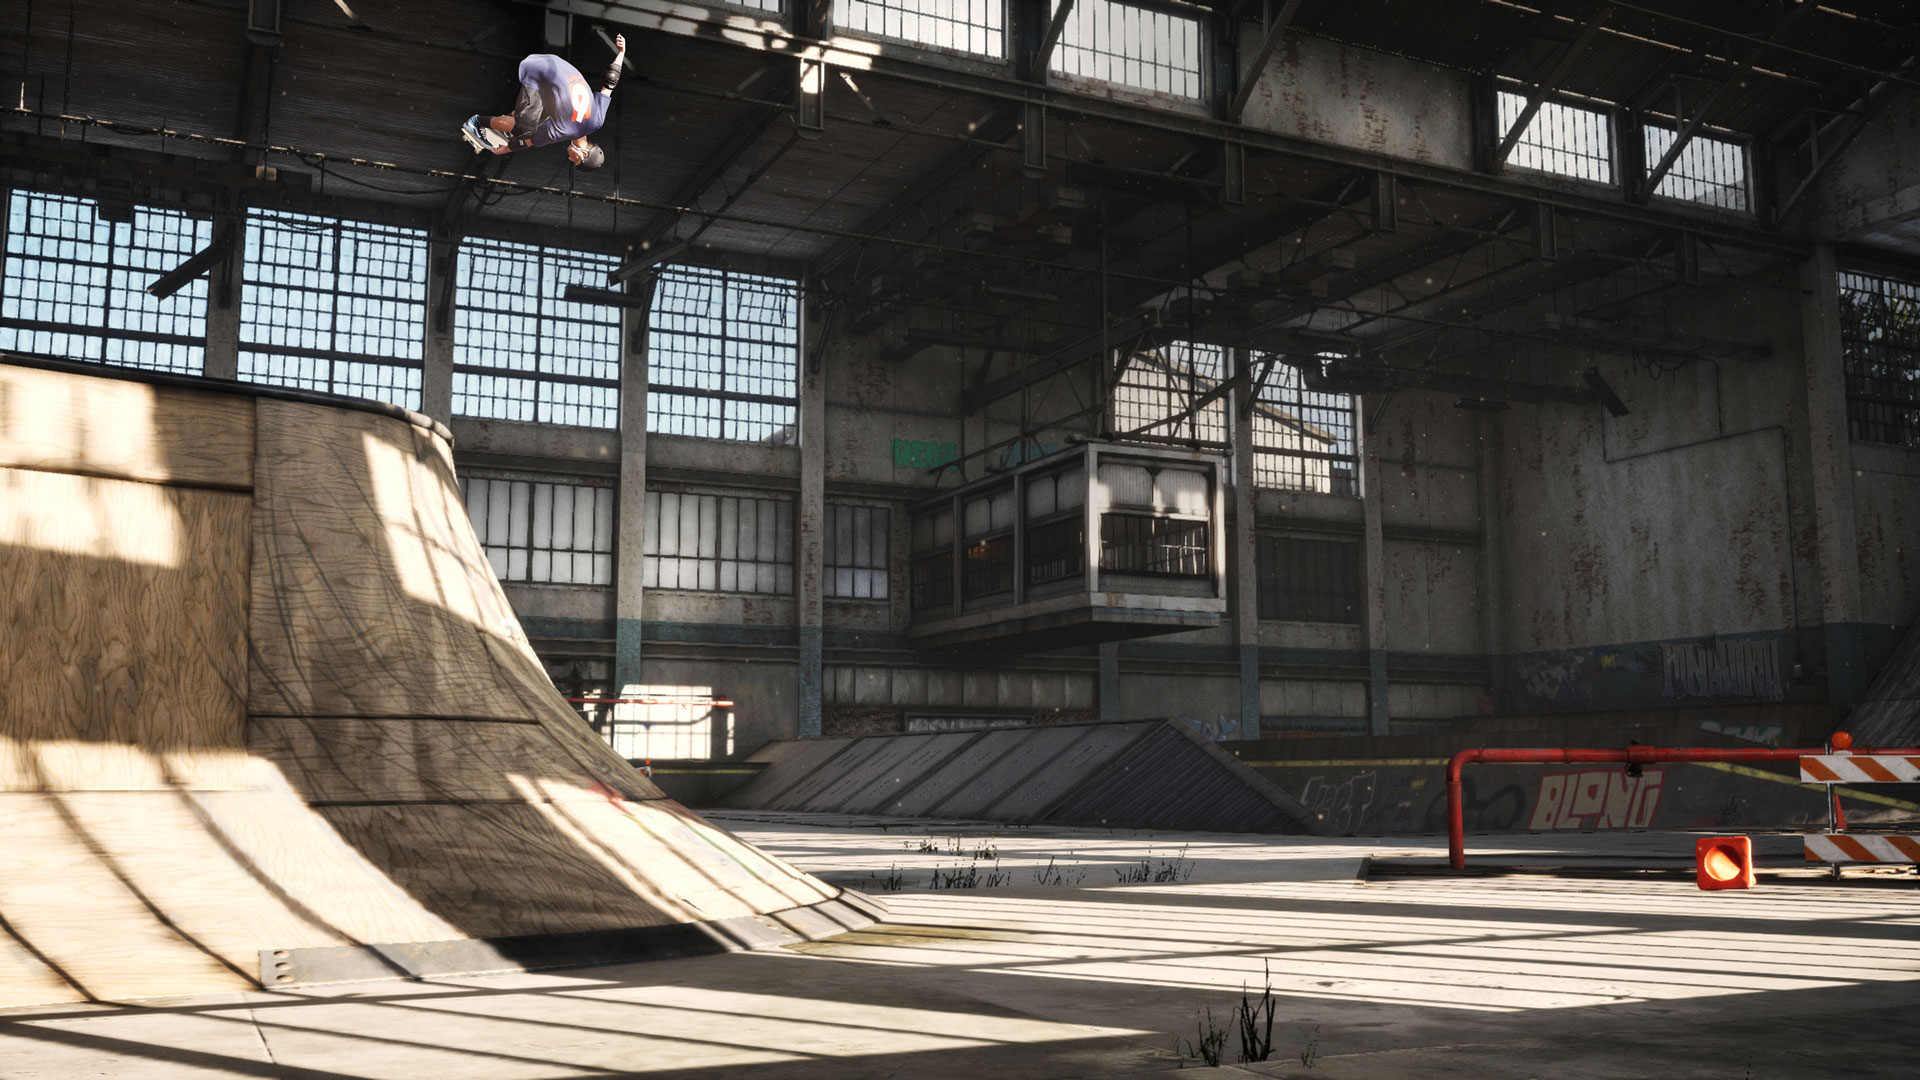 A 900-Degree Look at Tony Hawk's Pro Skater 1 and 2's Reveal - Image 1